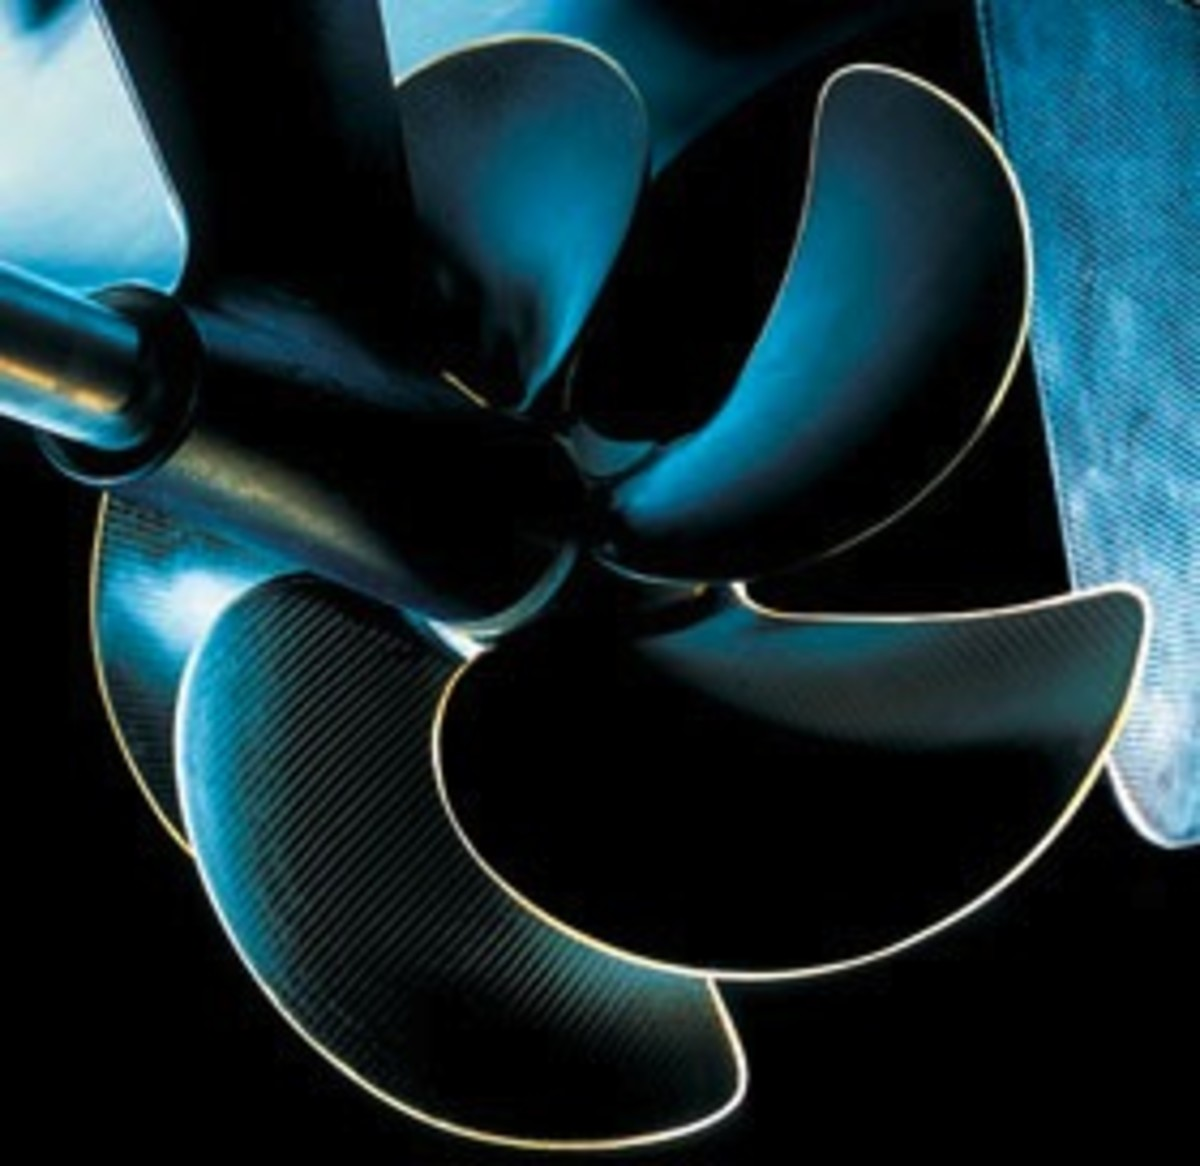 Propeller-in-carbon-fiber_280w-captioned